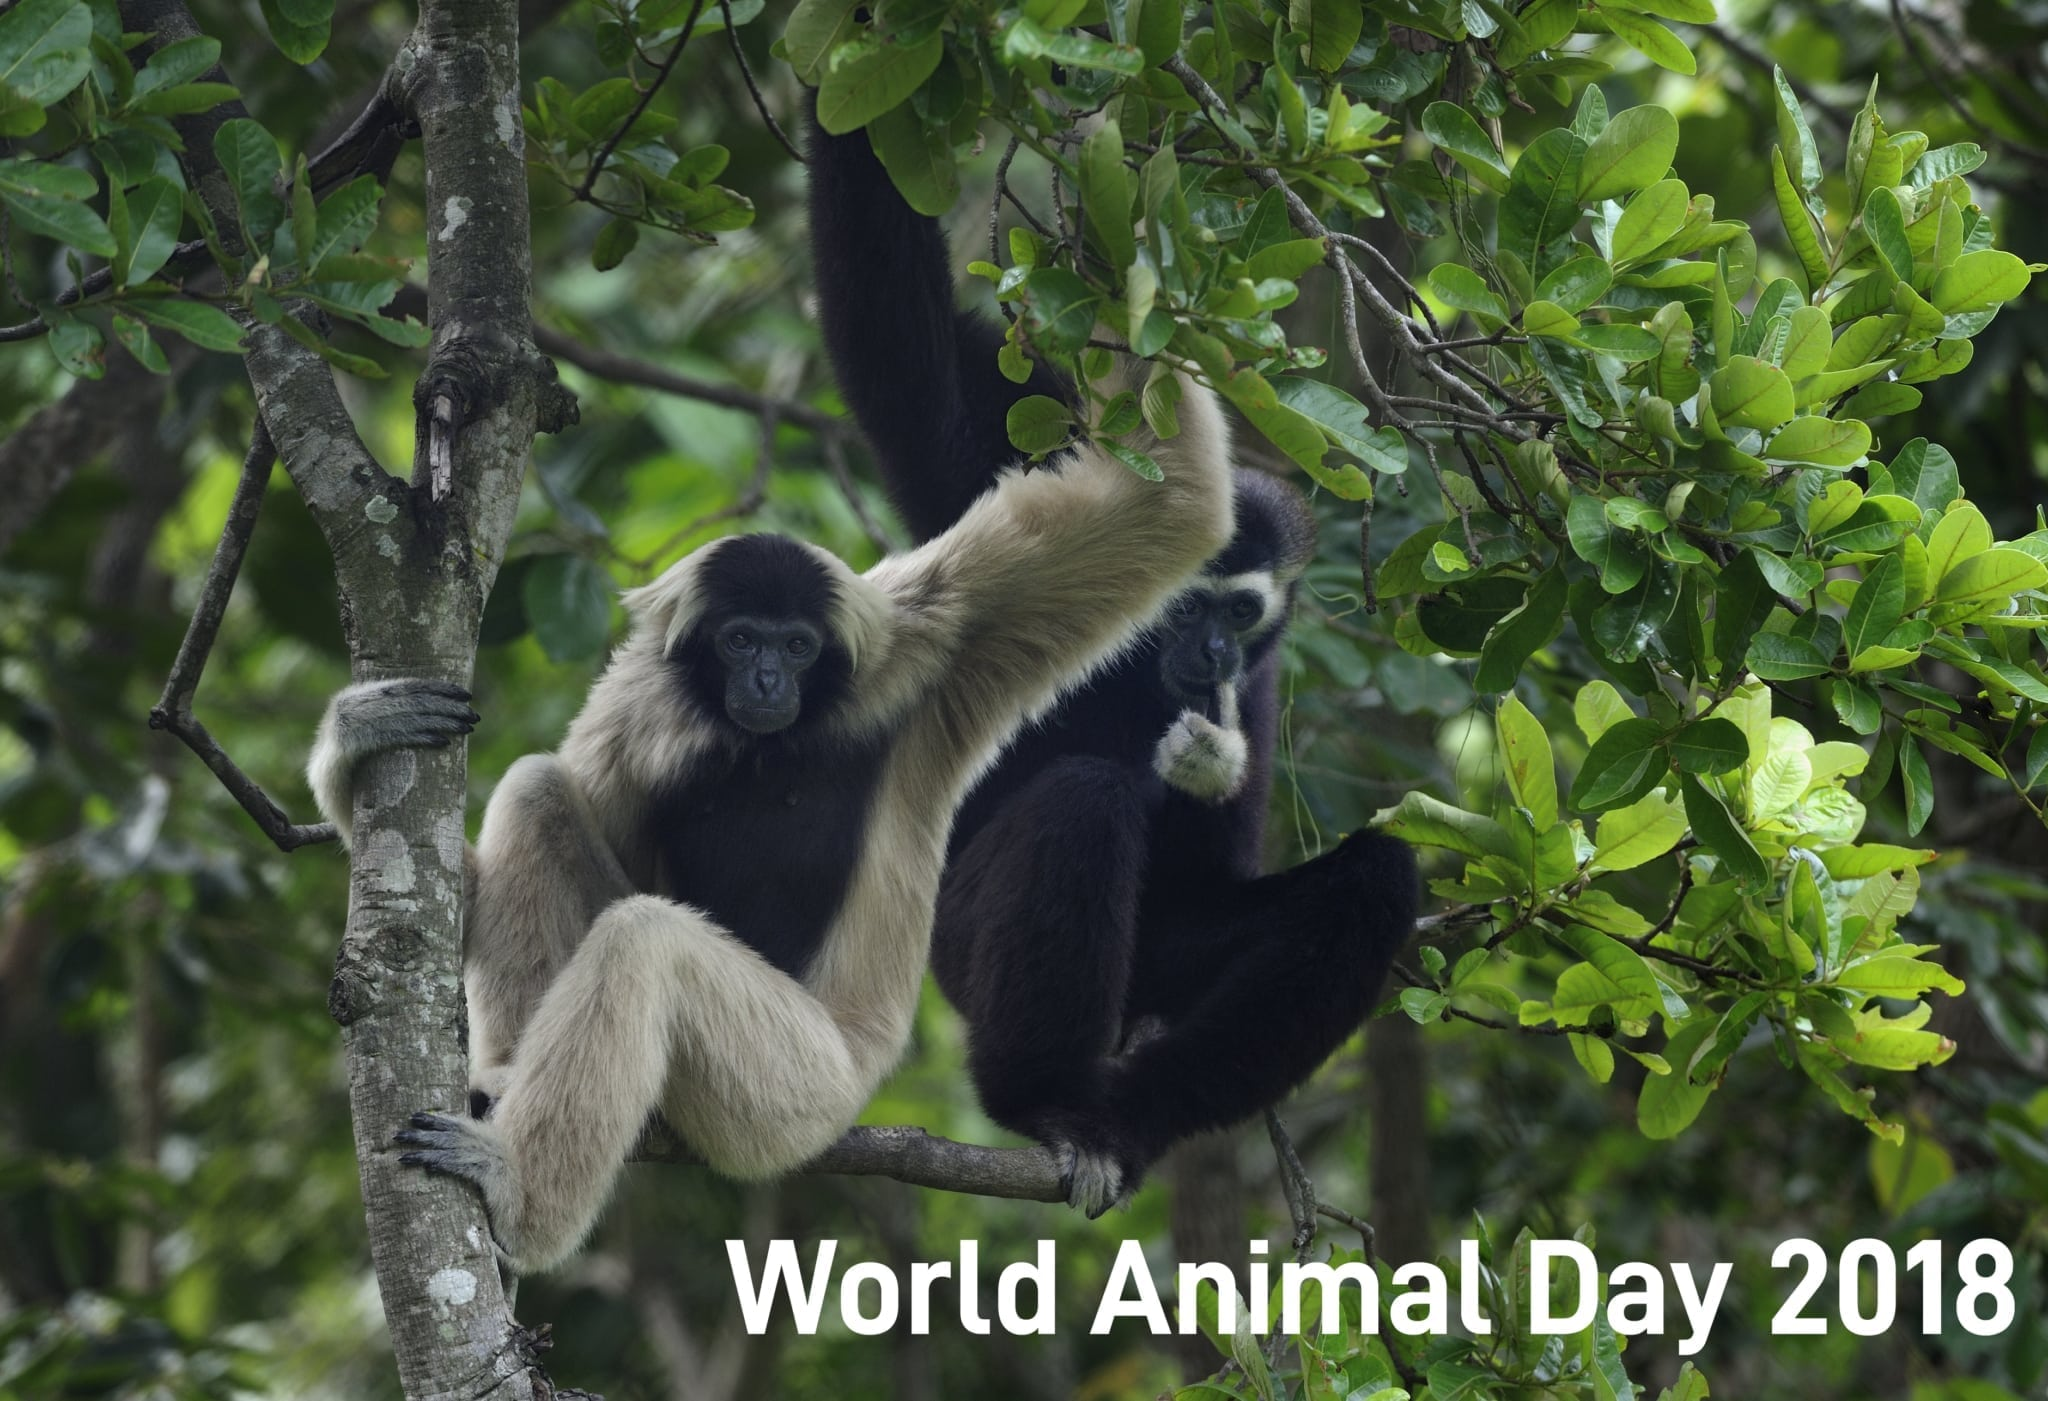 world animal day 2018 World Animal Day 2018 World Animal Day 2018